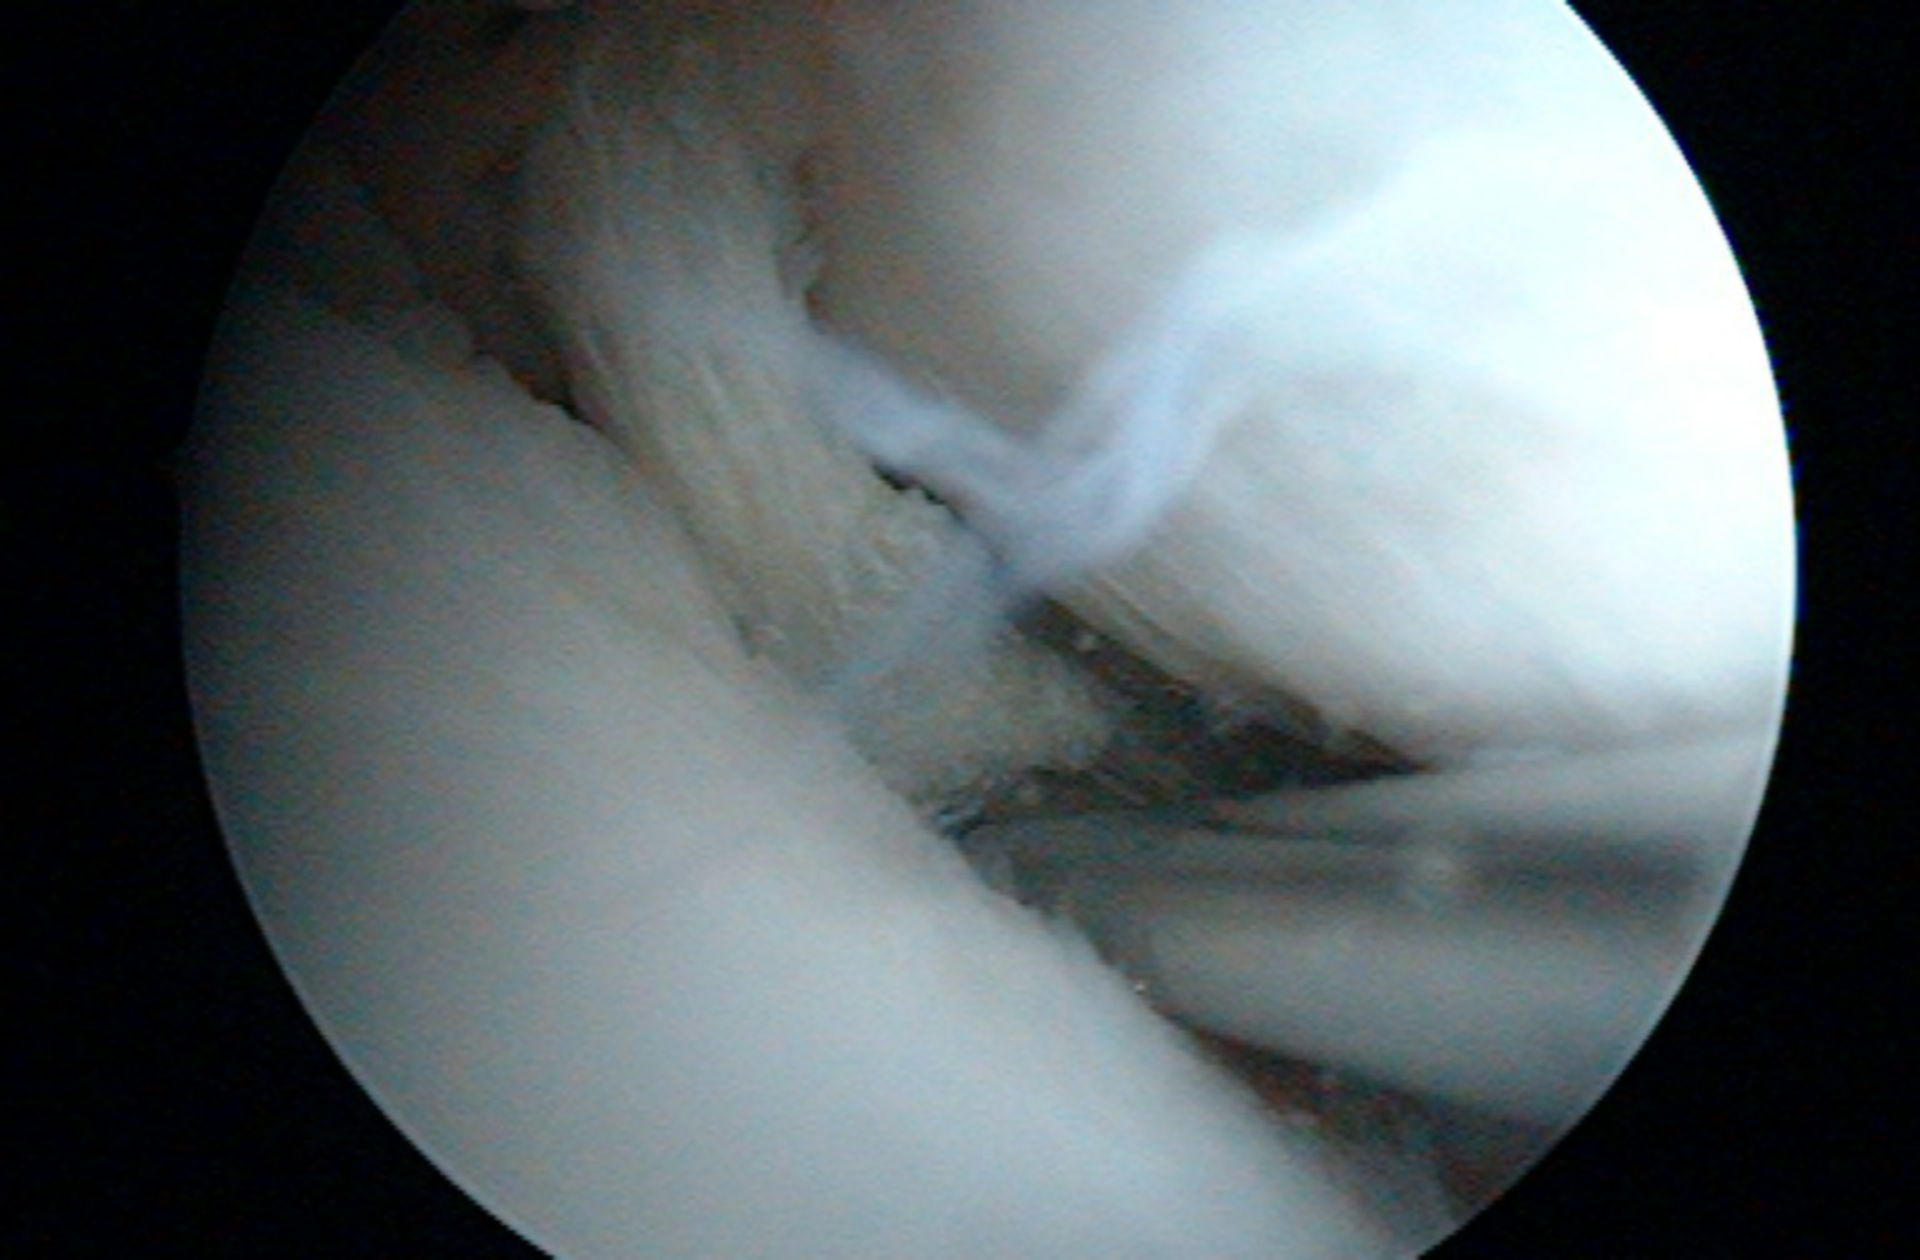 Rupture of the Medial Meniscus